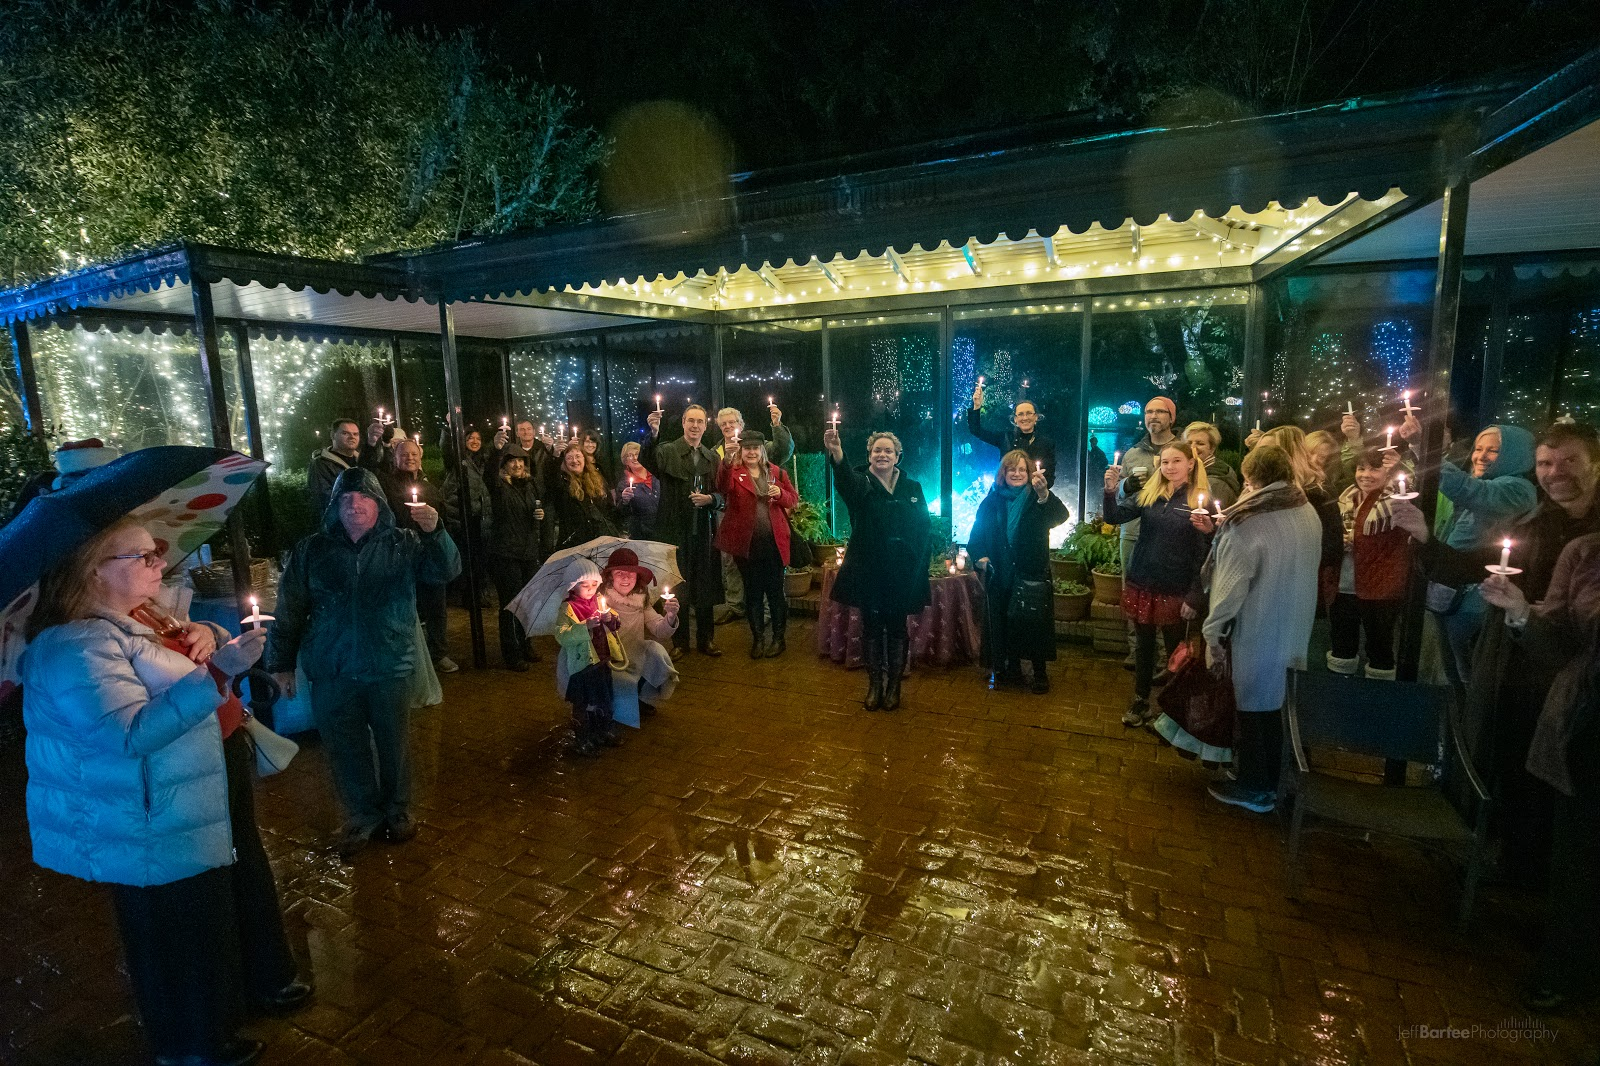 Julie Bly DeVere leading Winter Solstice festivities at Filoli in 2019